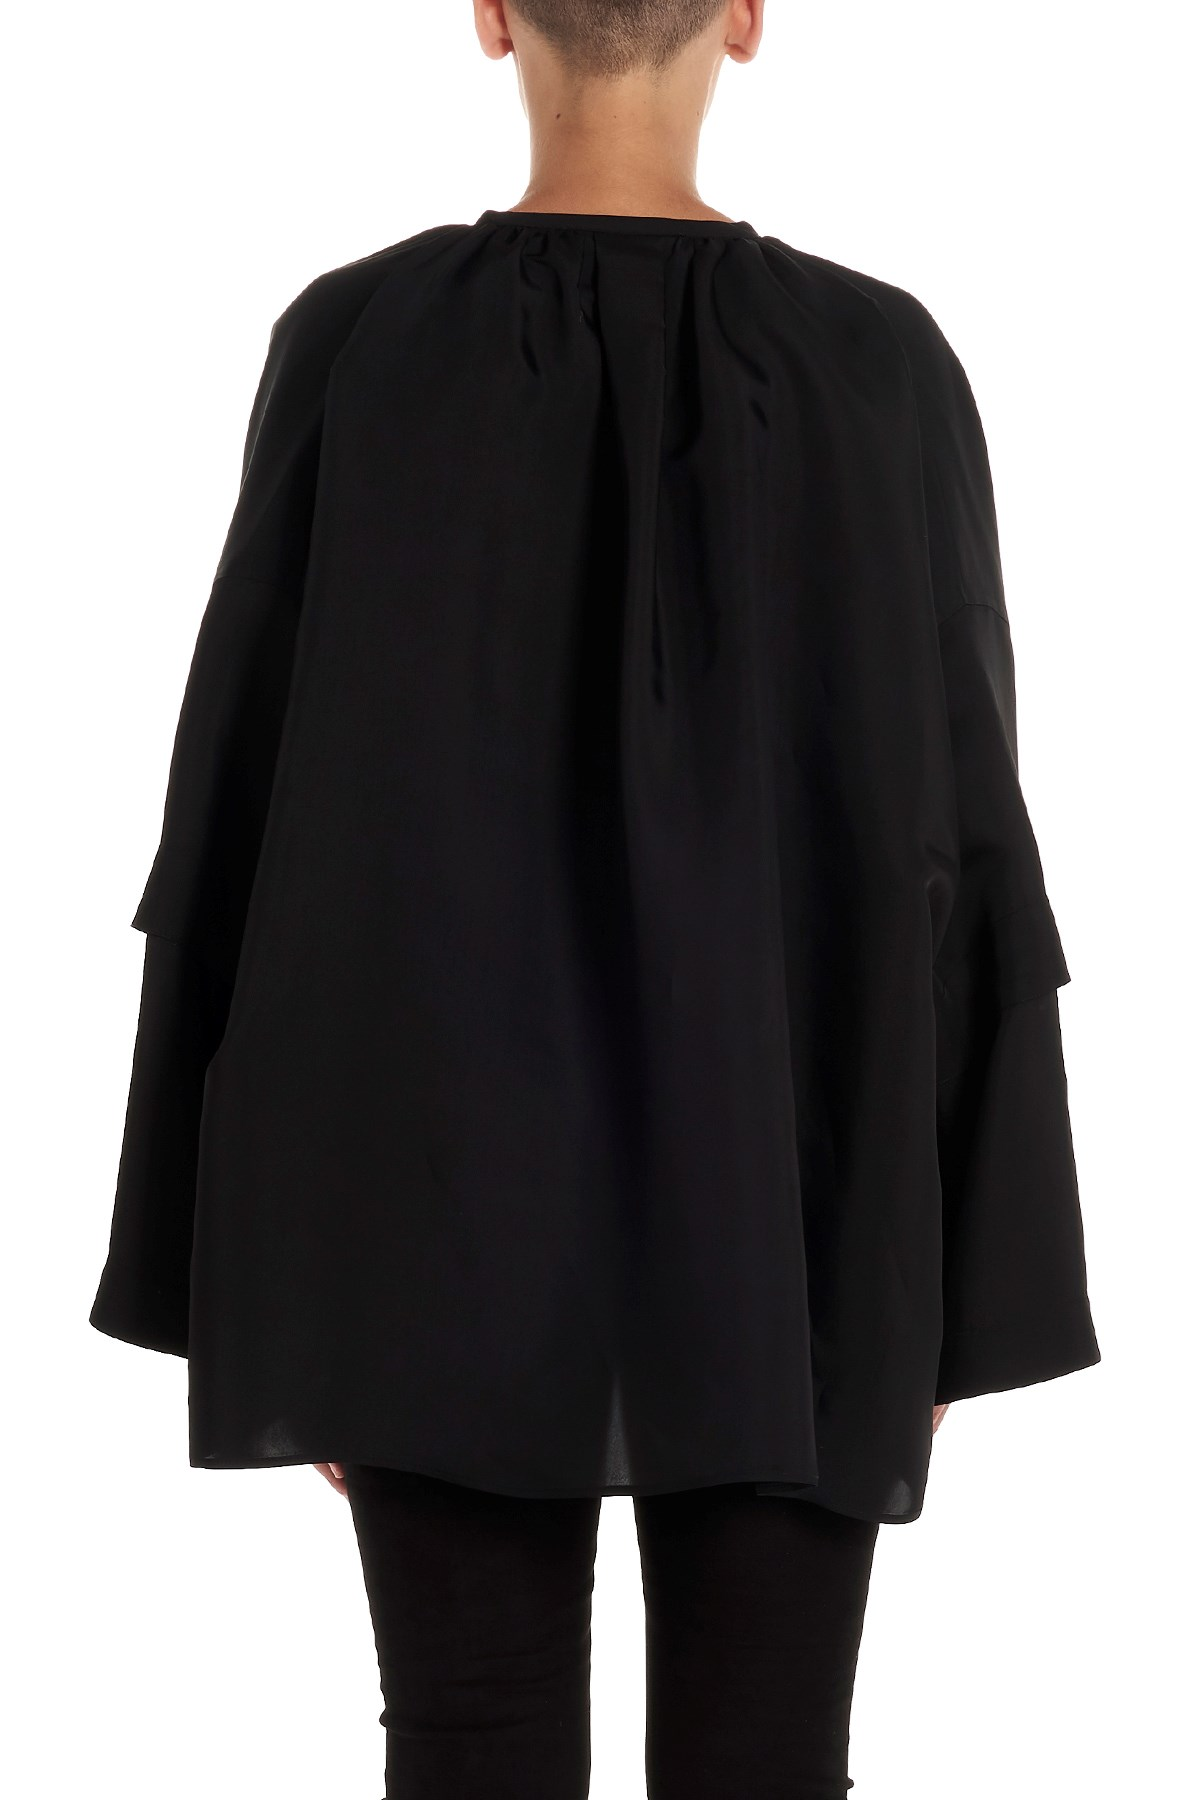 e7fa3986d5acaf jil sander 'Lilium' shirt available on julian-fashion.com - 97584